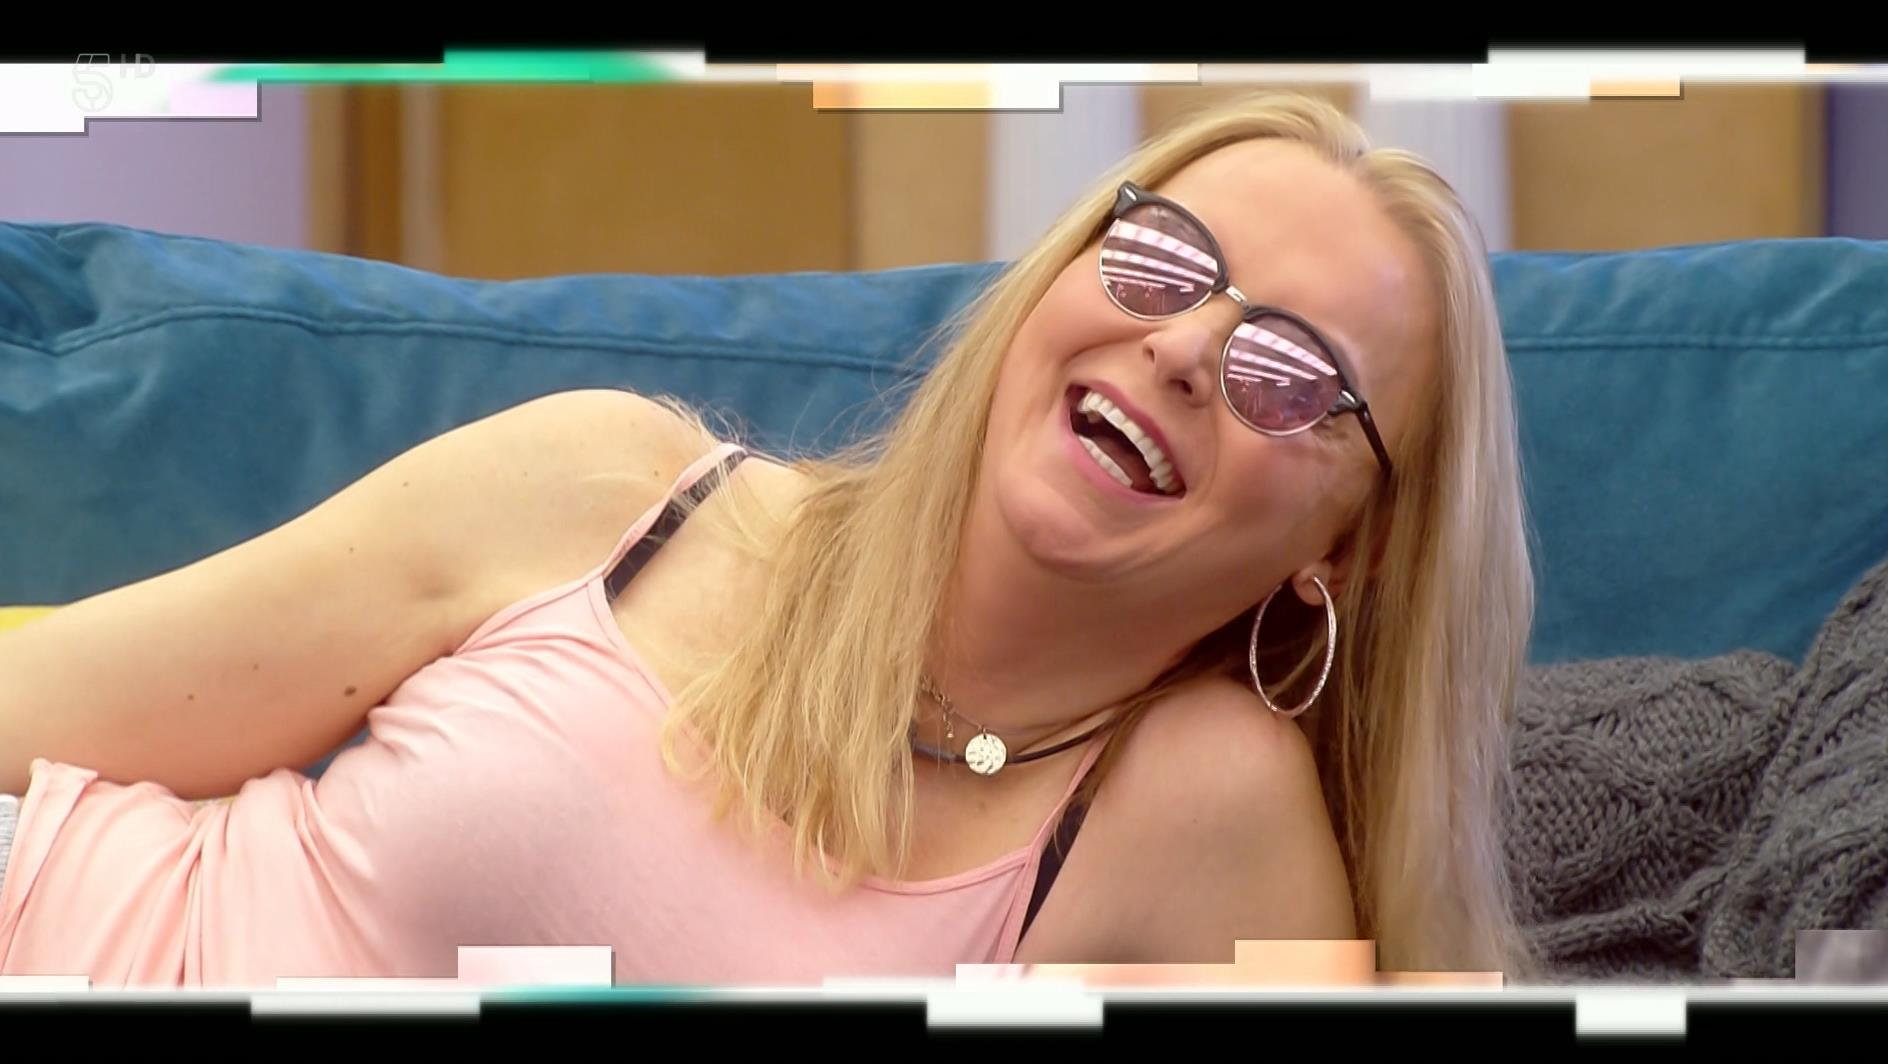 Channel 5 - Celebrity Big Brother - India Willoughby (18)